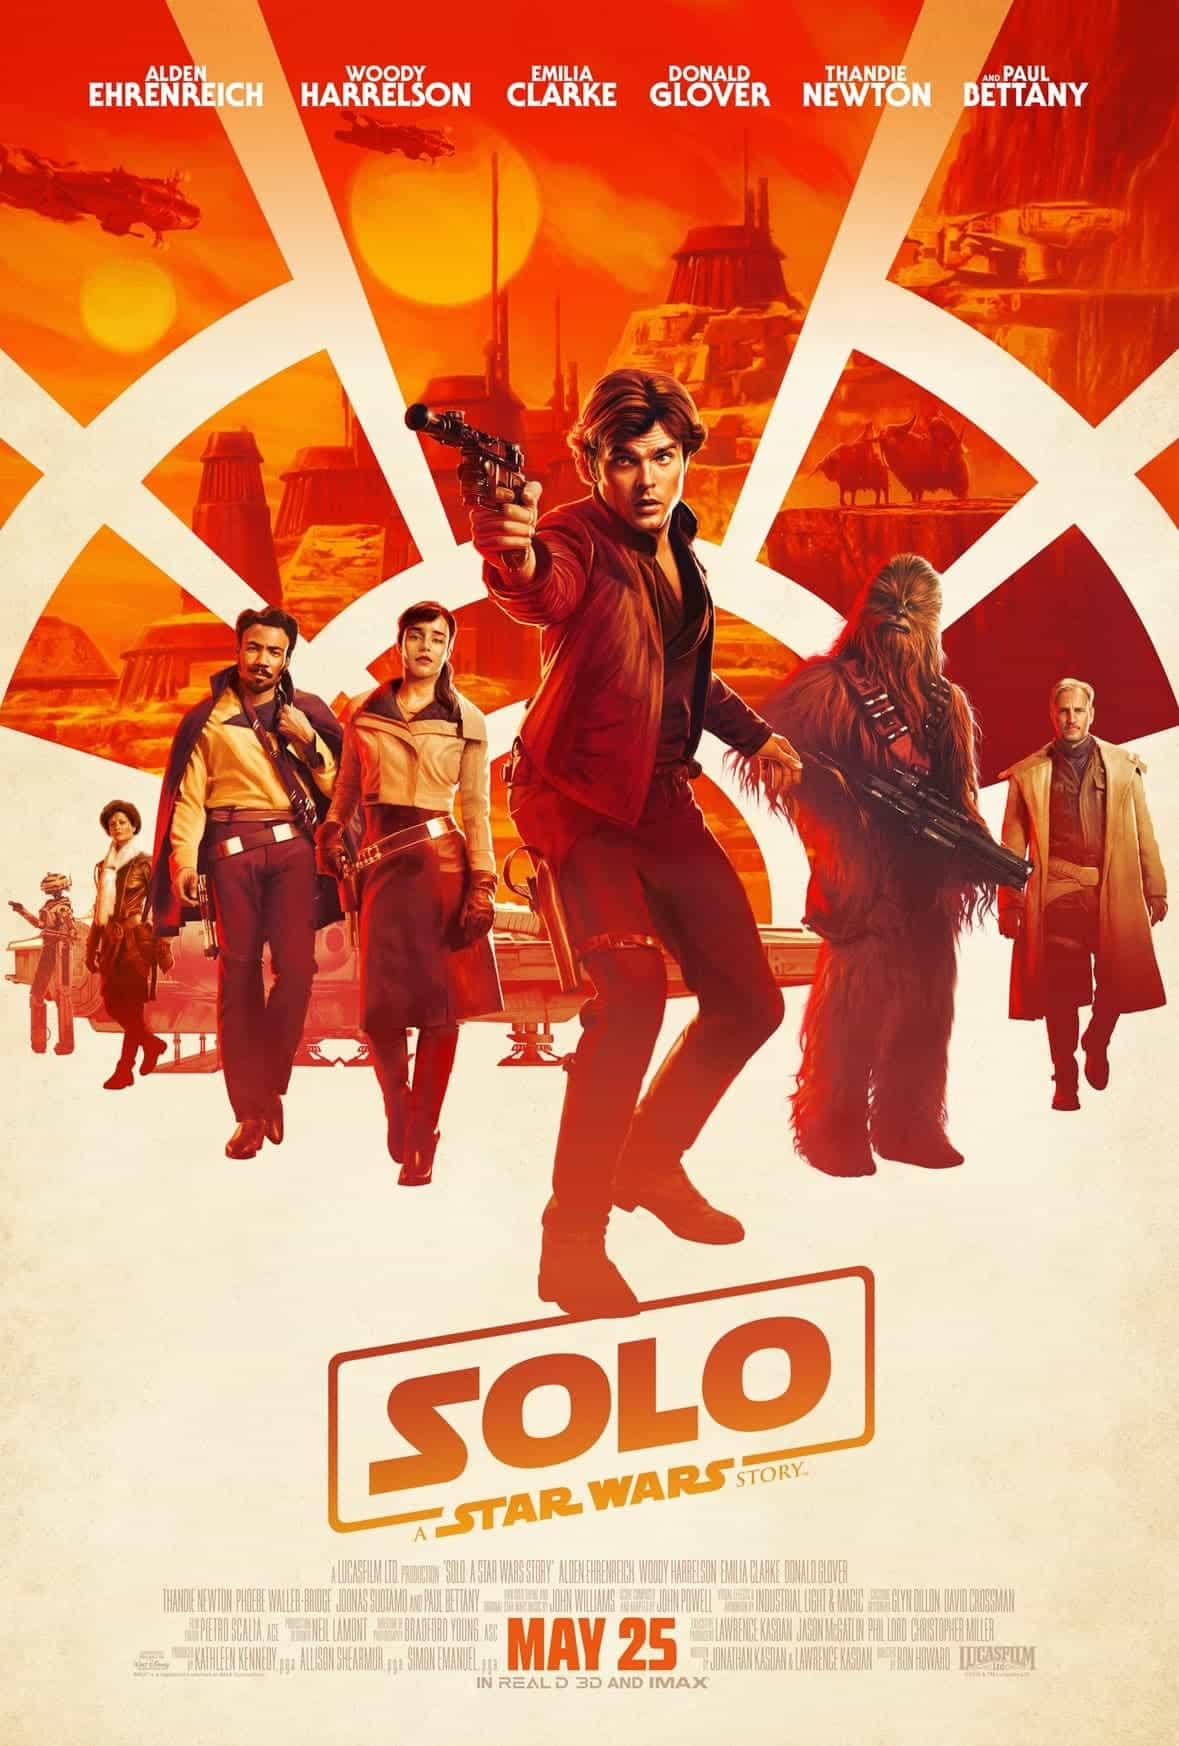 First teaser for Solo: A Star Wars Story, full trailer coming 5th February